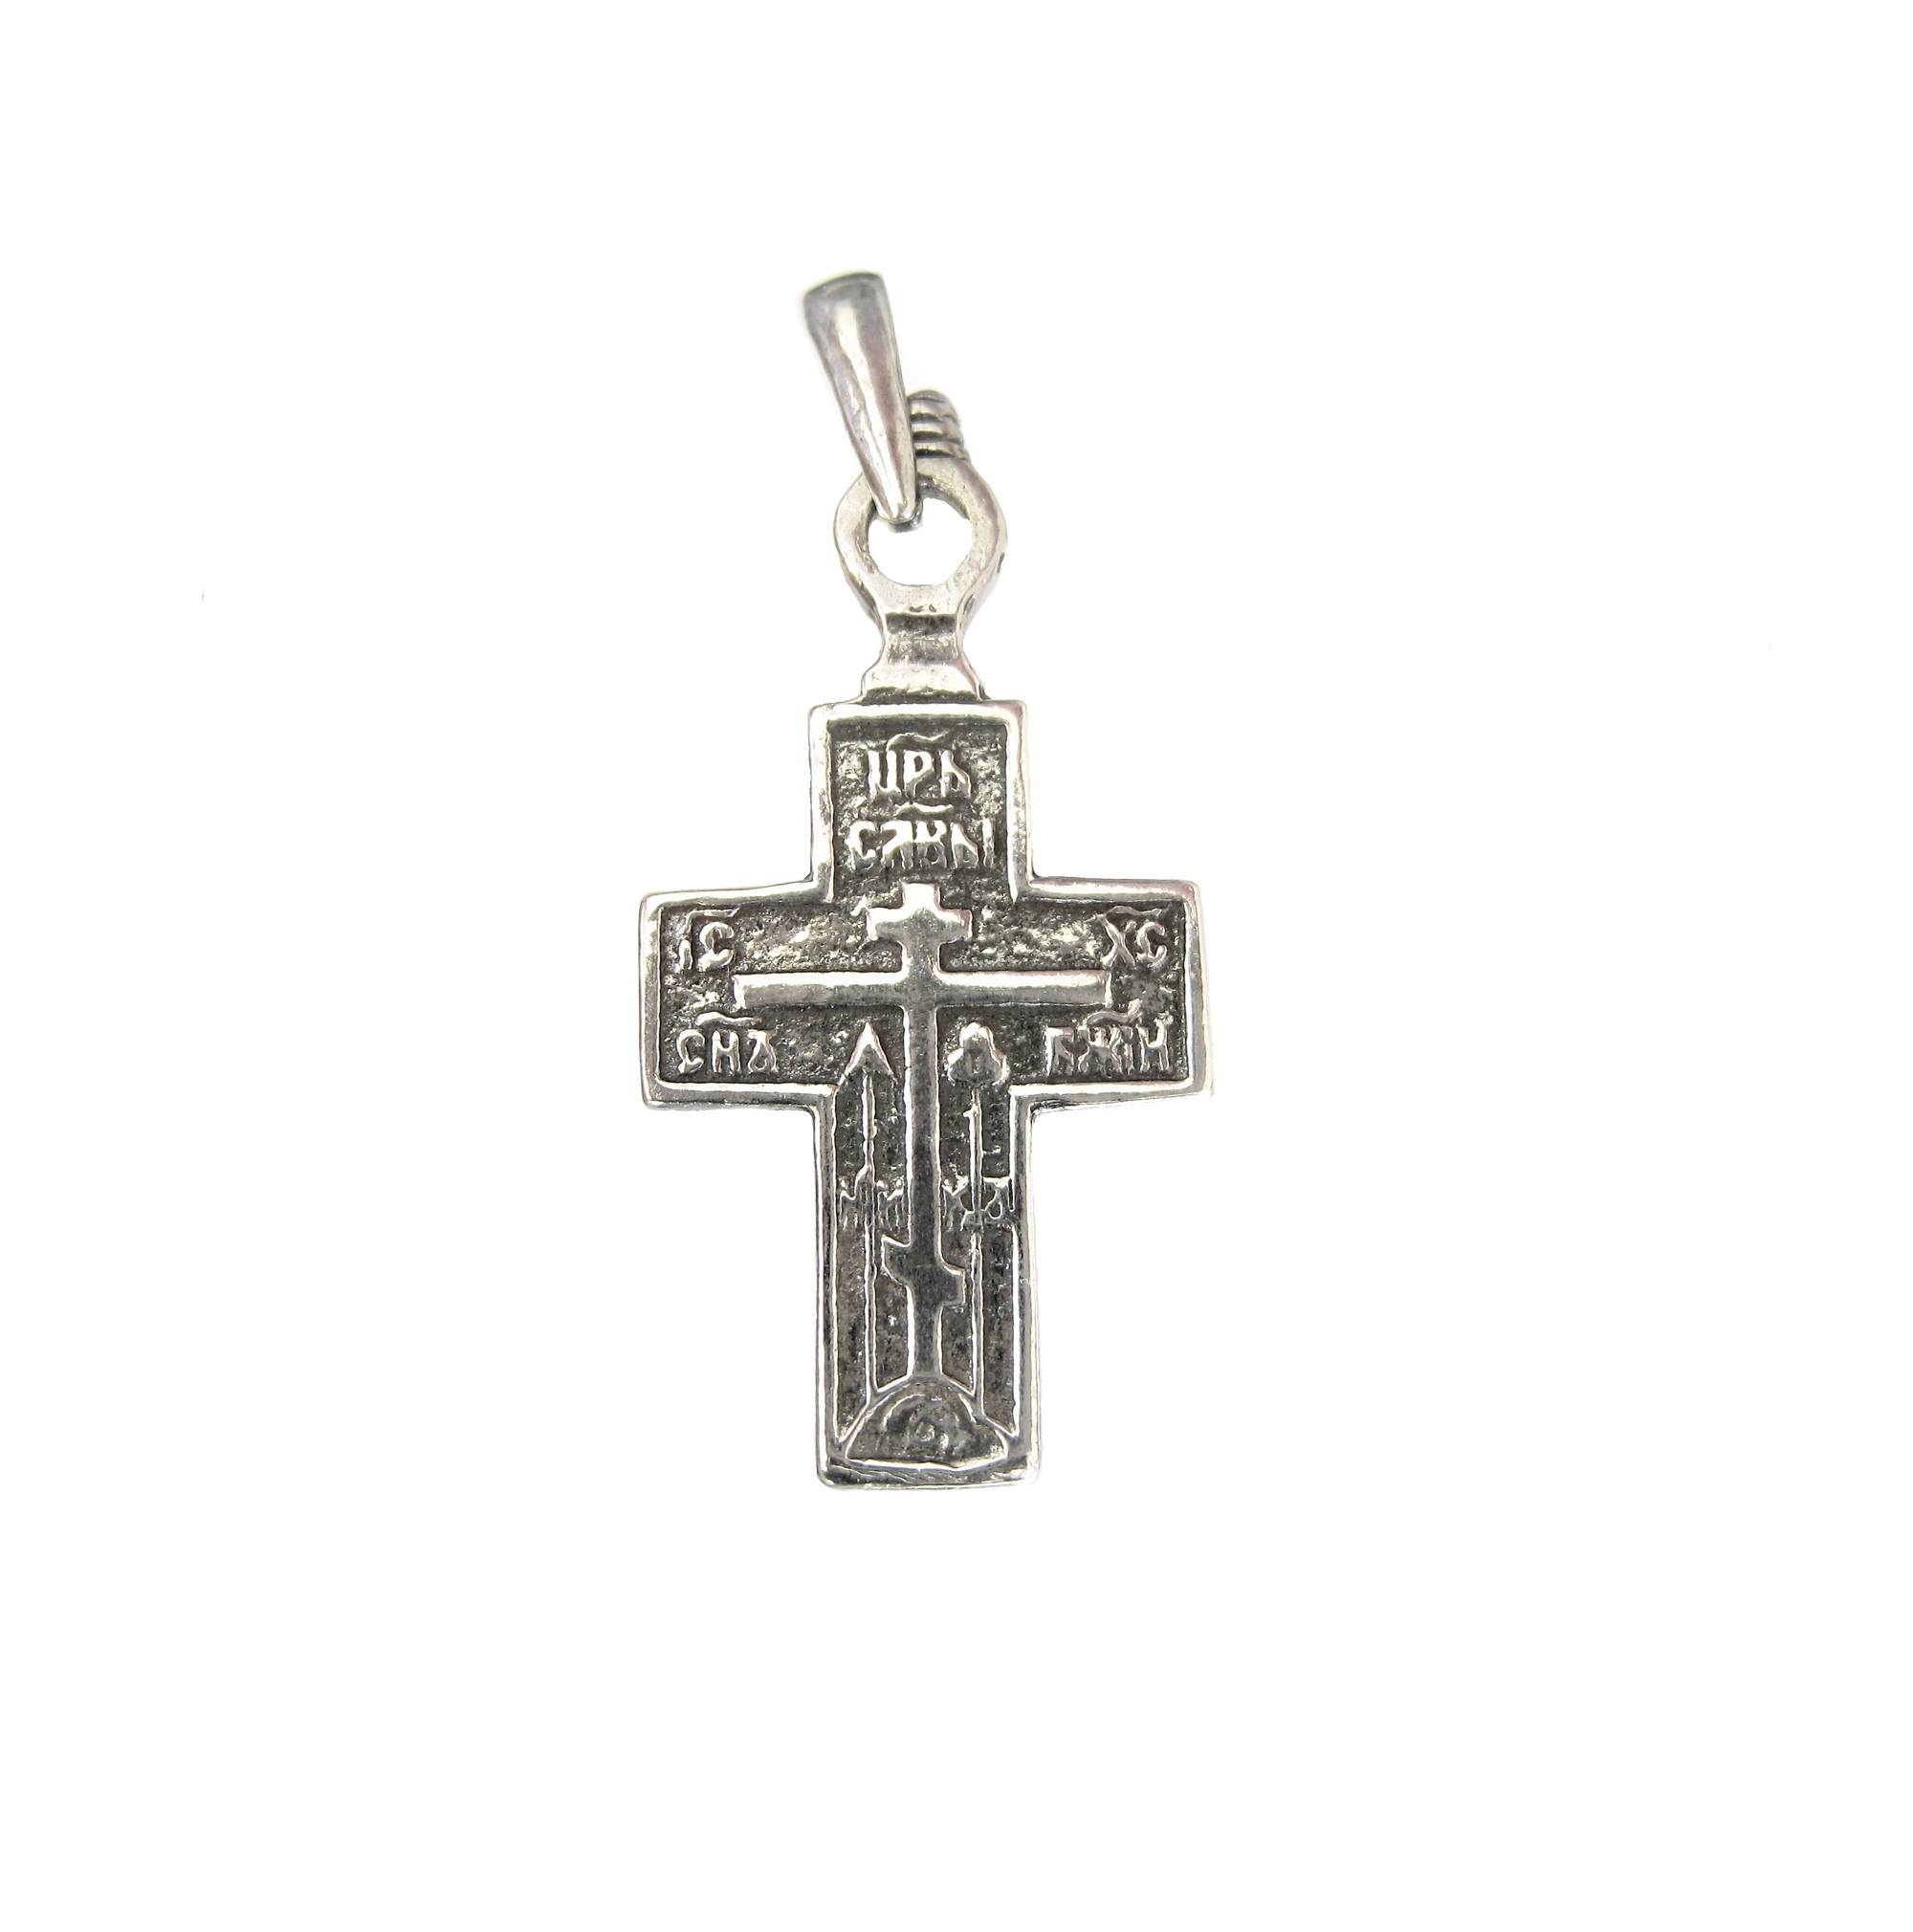 stamped 925 Vintage sterling silver pendant 925 cross handmade pendant with Cz